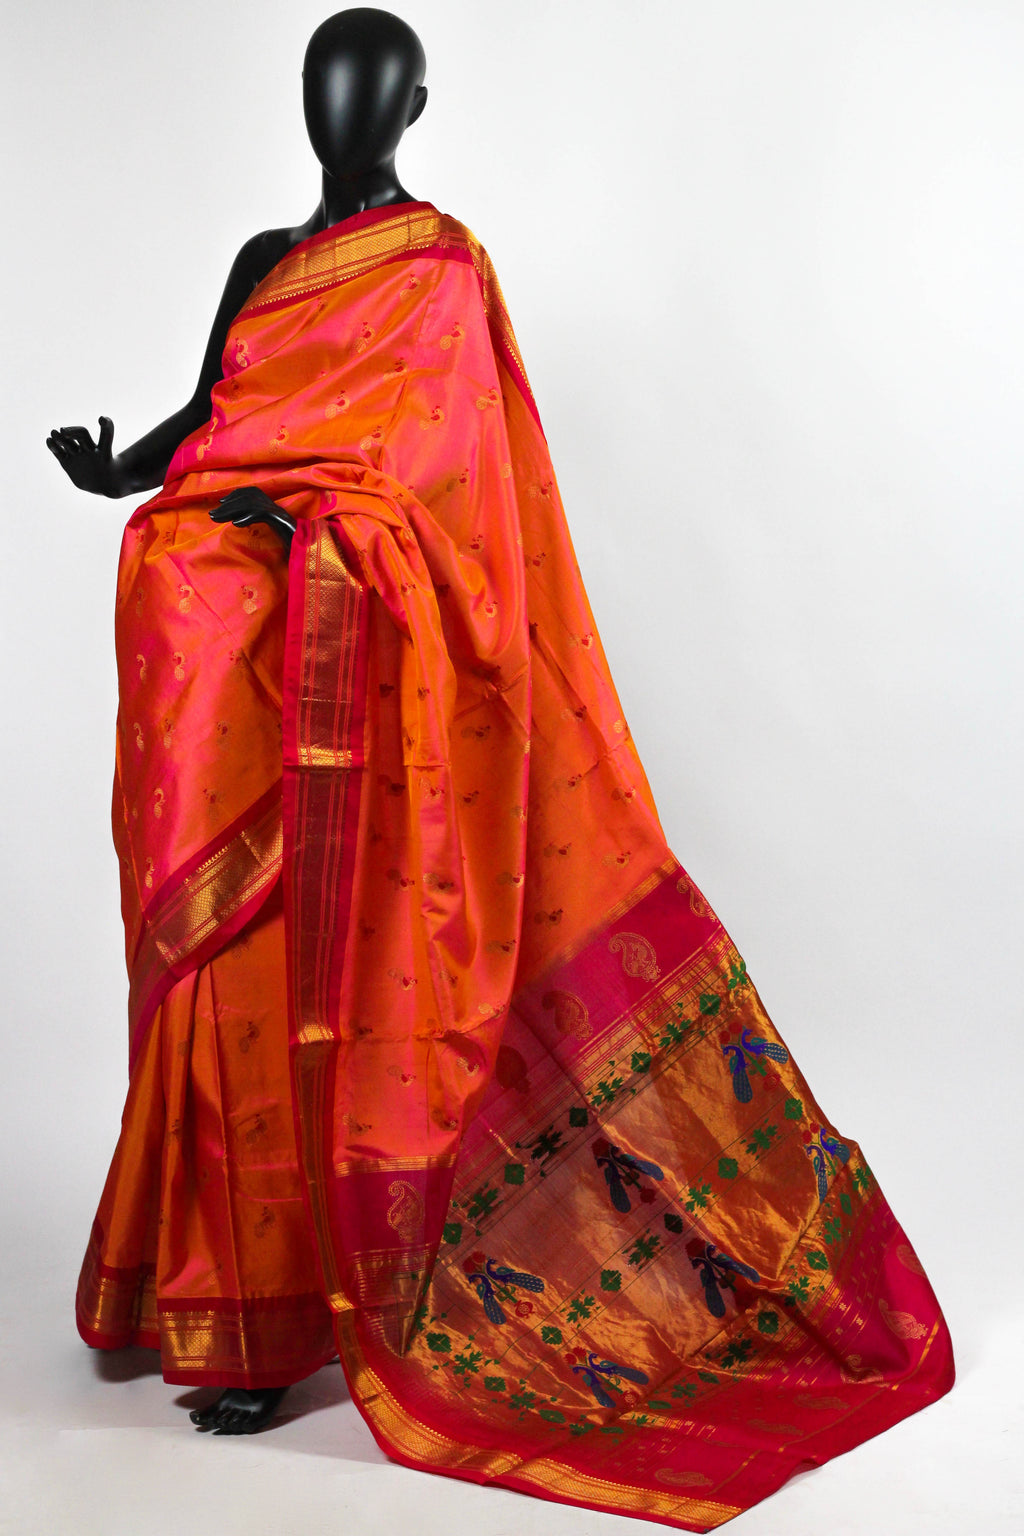 The Kashibai saree